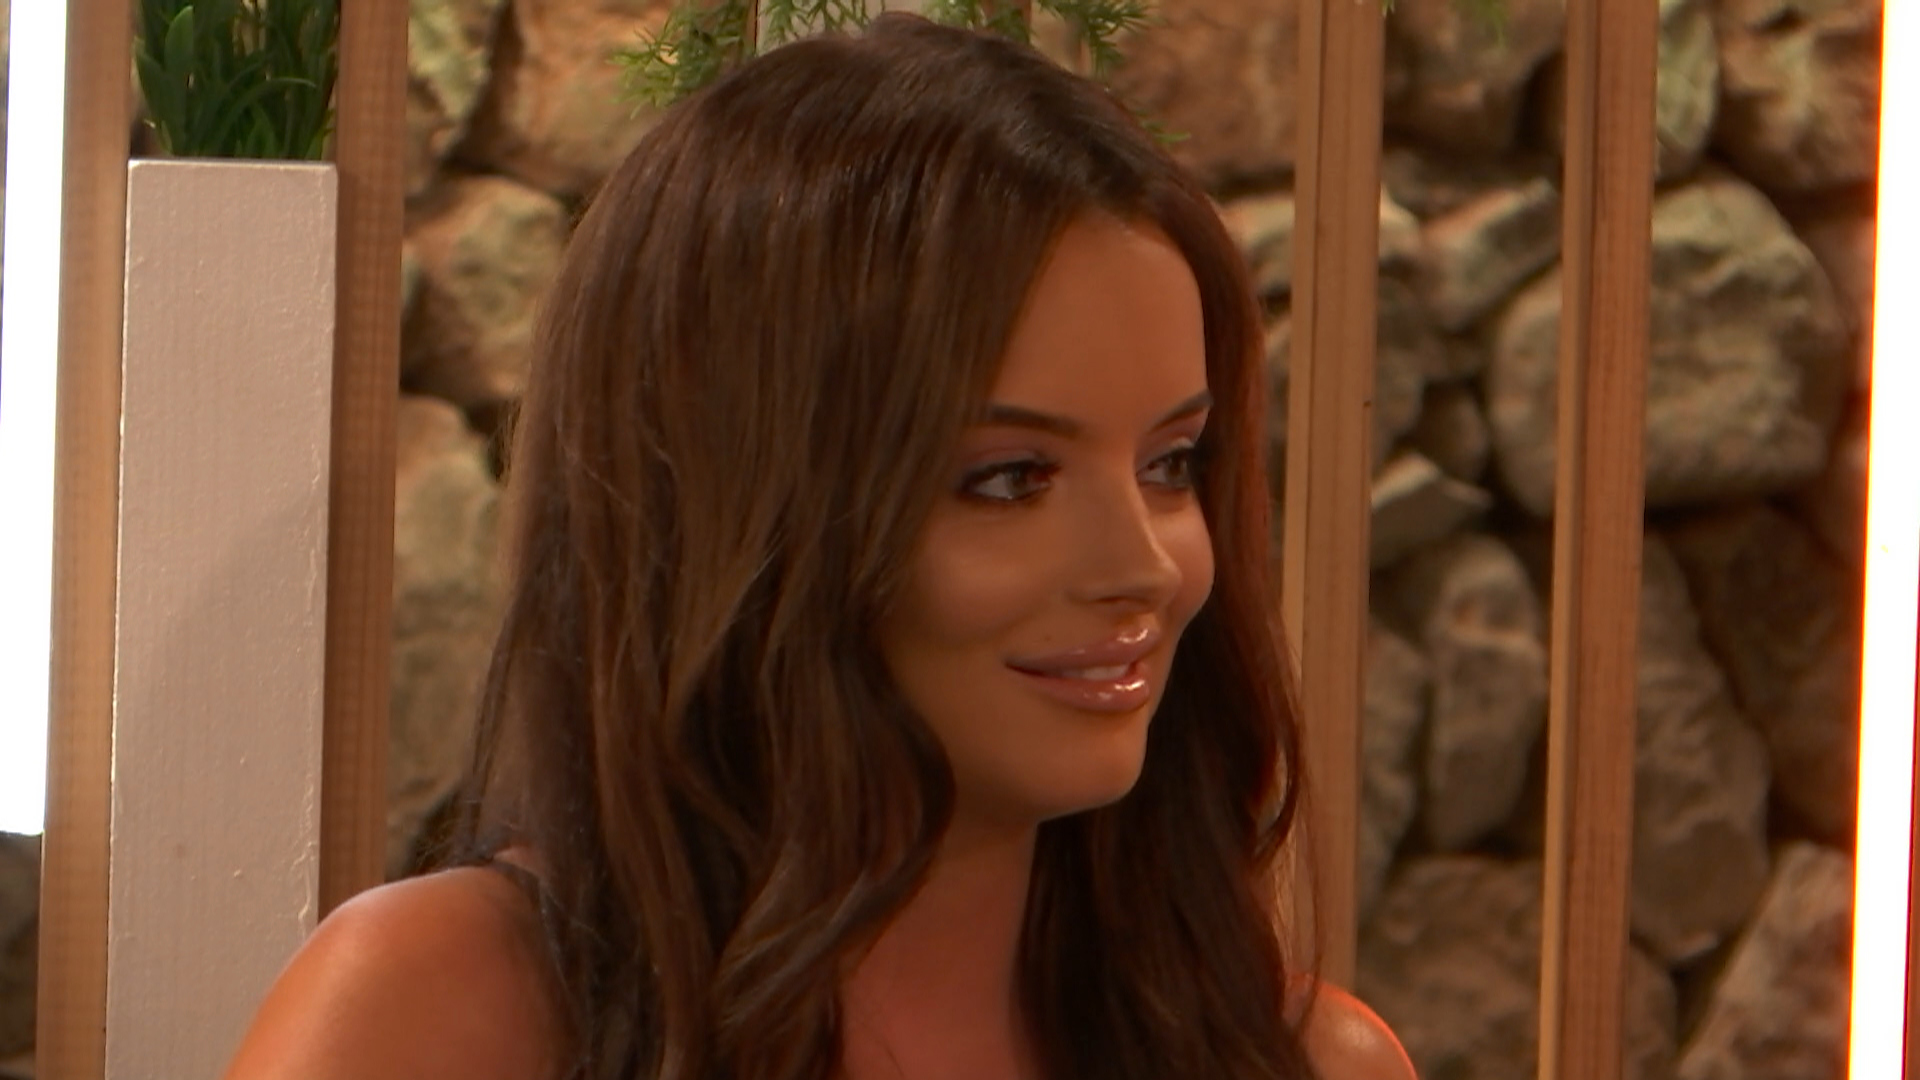 Love Island SPOILER: Maura makes her move on Curtis